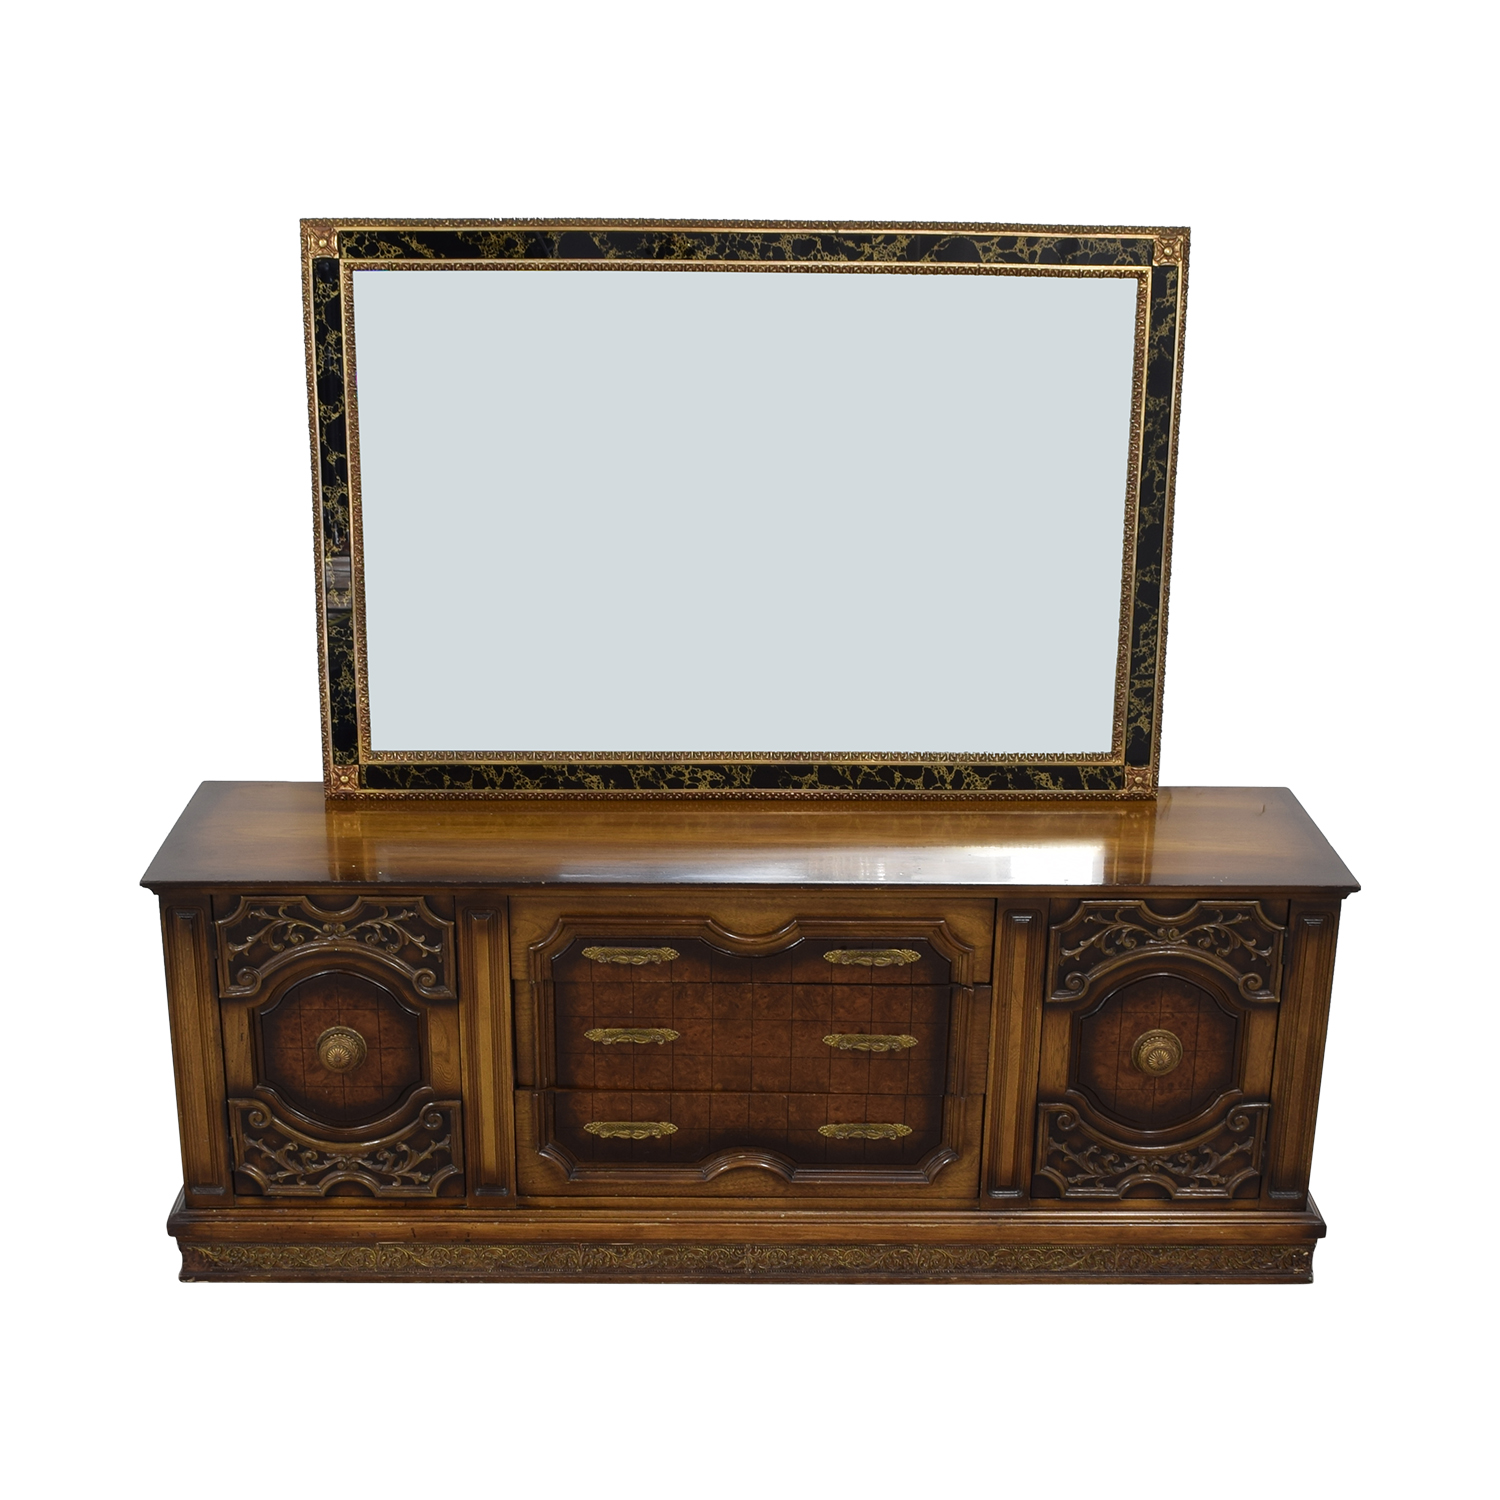 Nine-Drawer Wood Dresser with Mirror nj